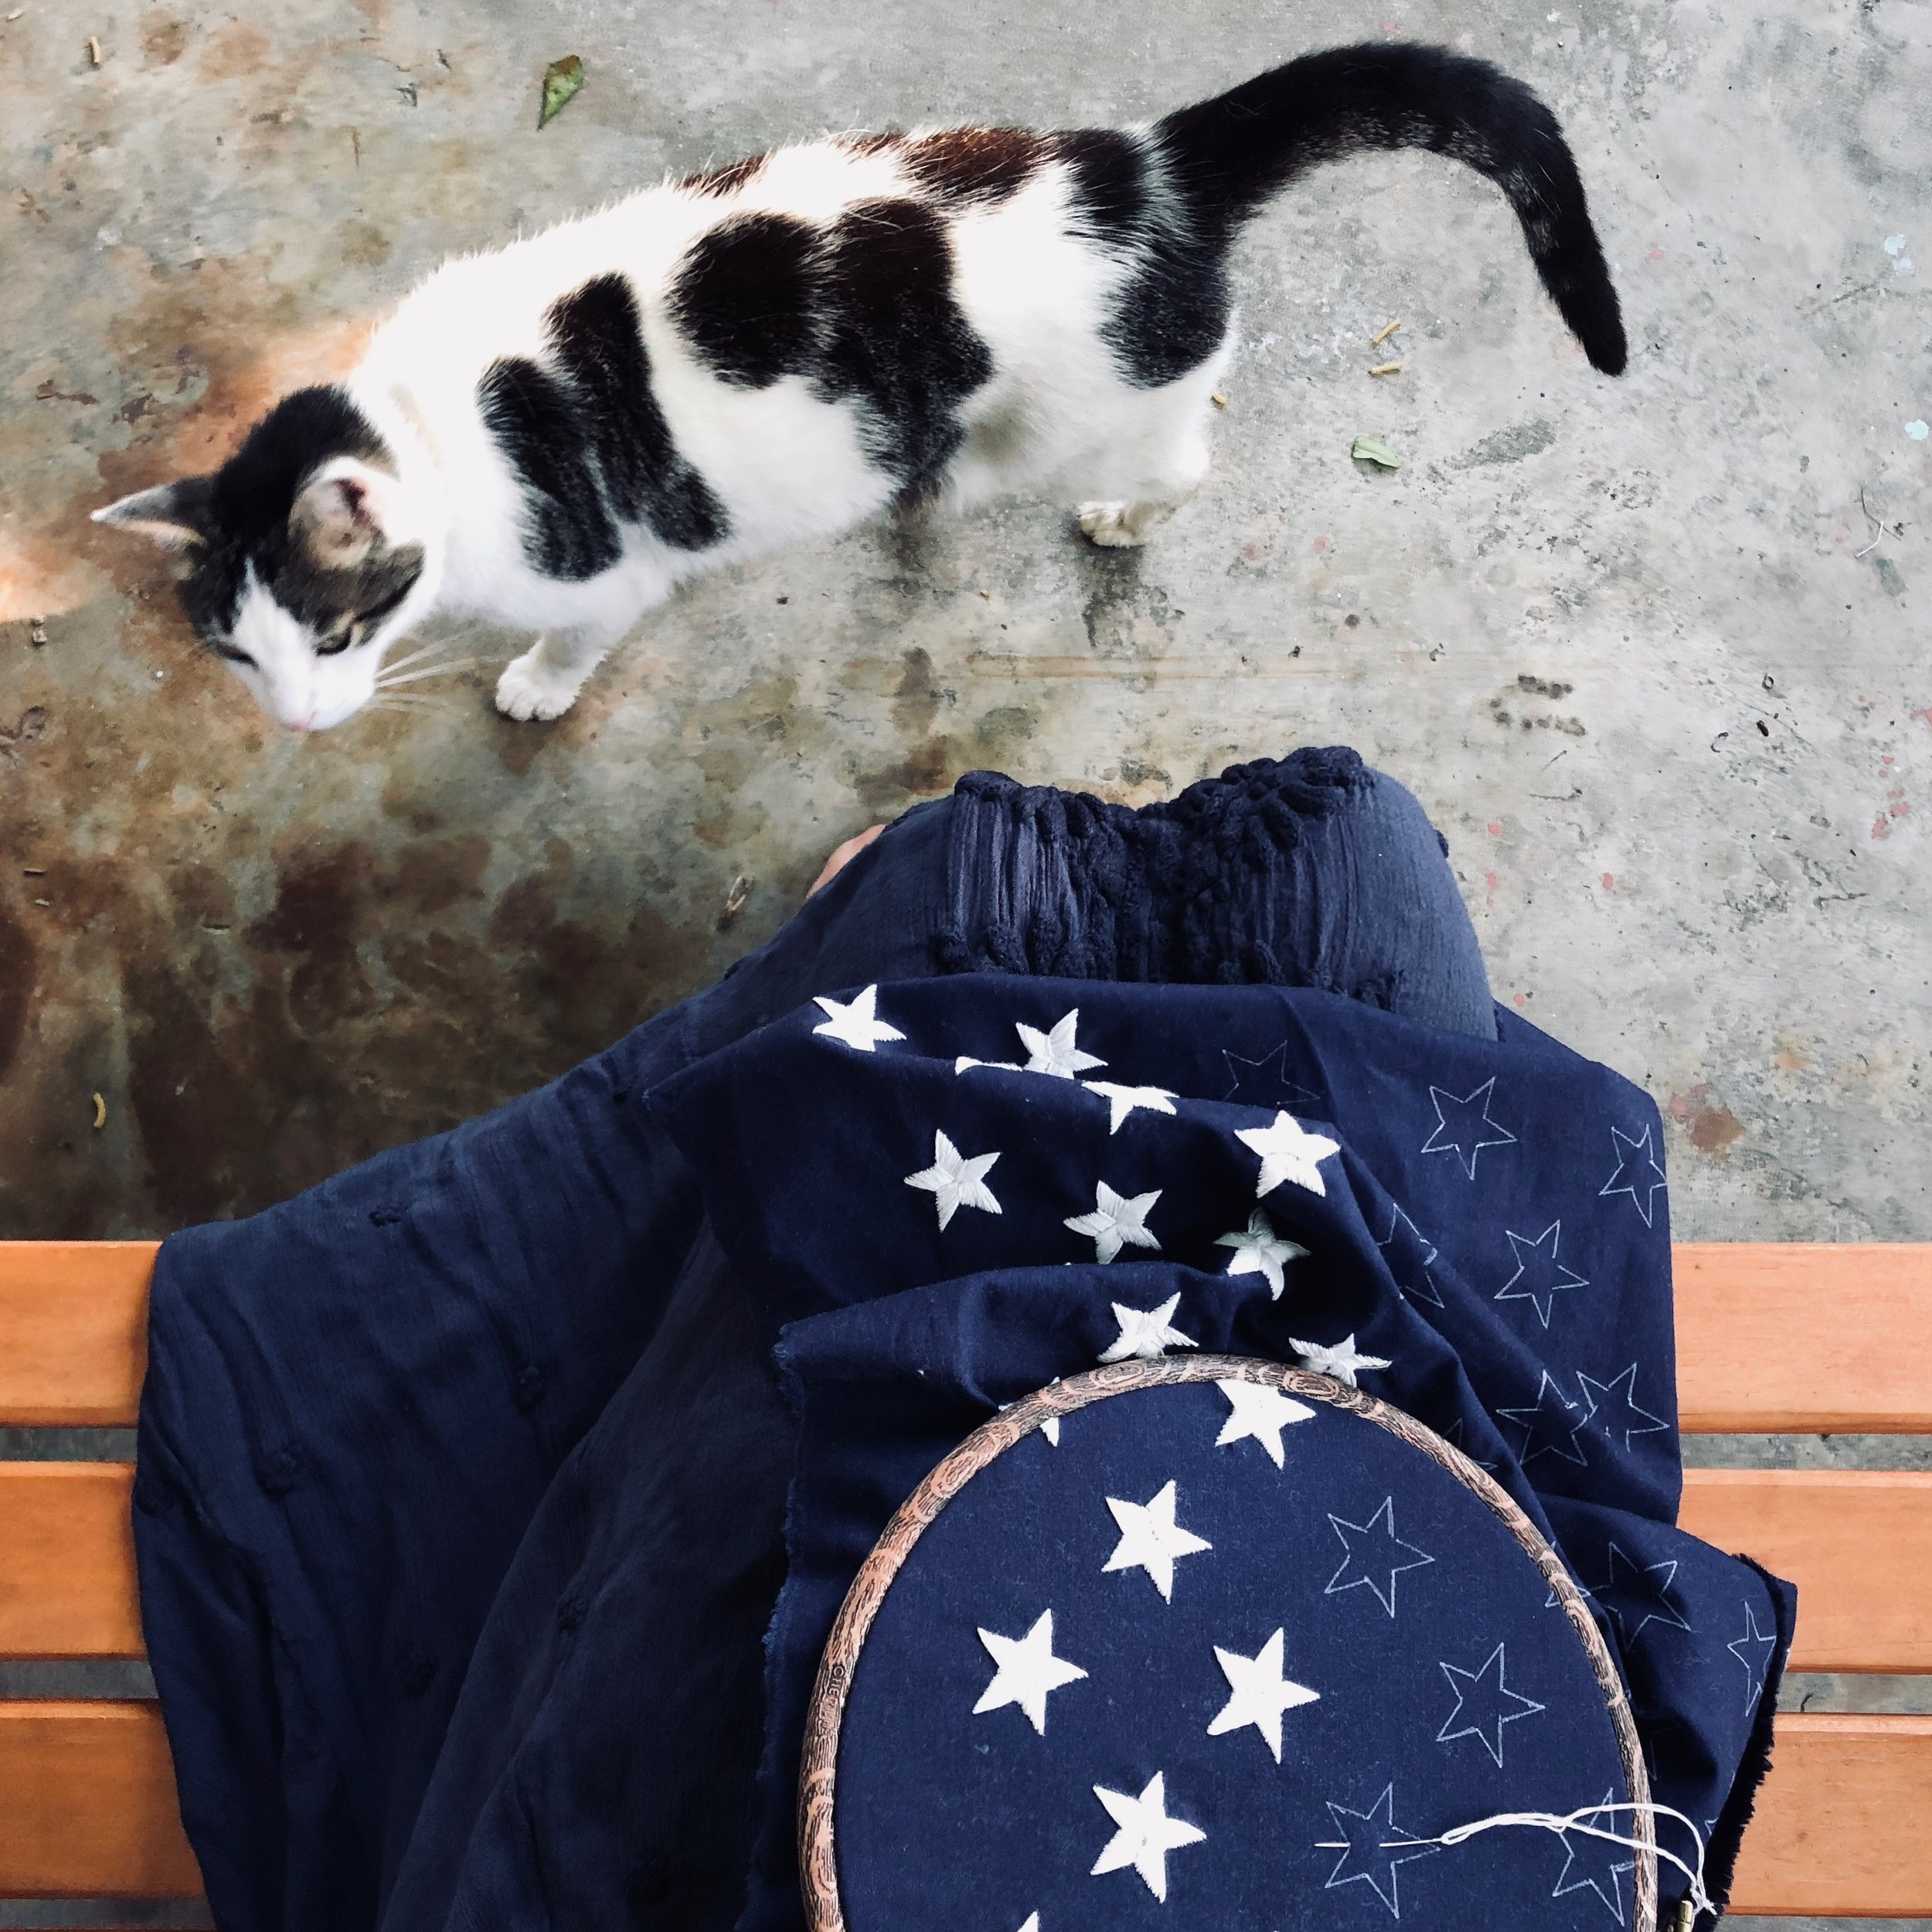 Embroidering Each Star